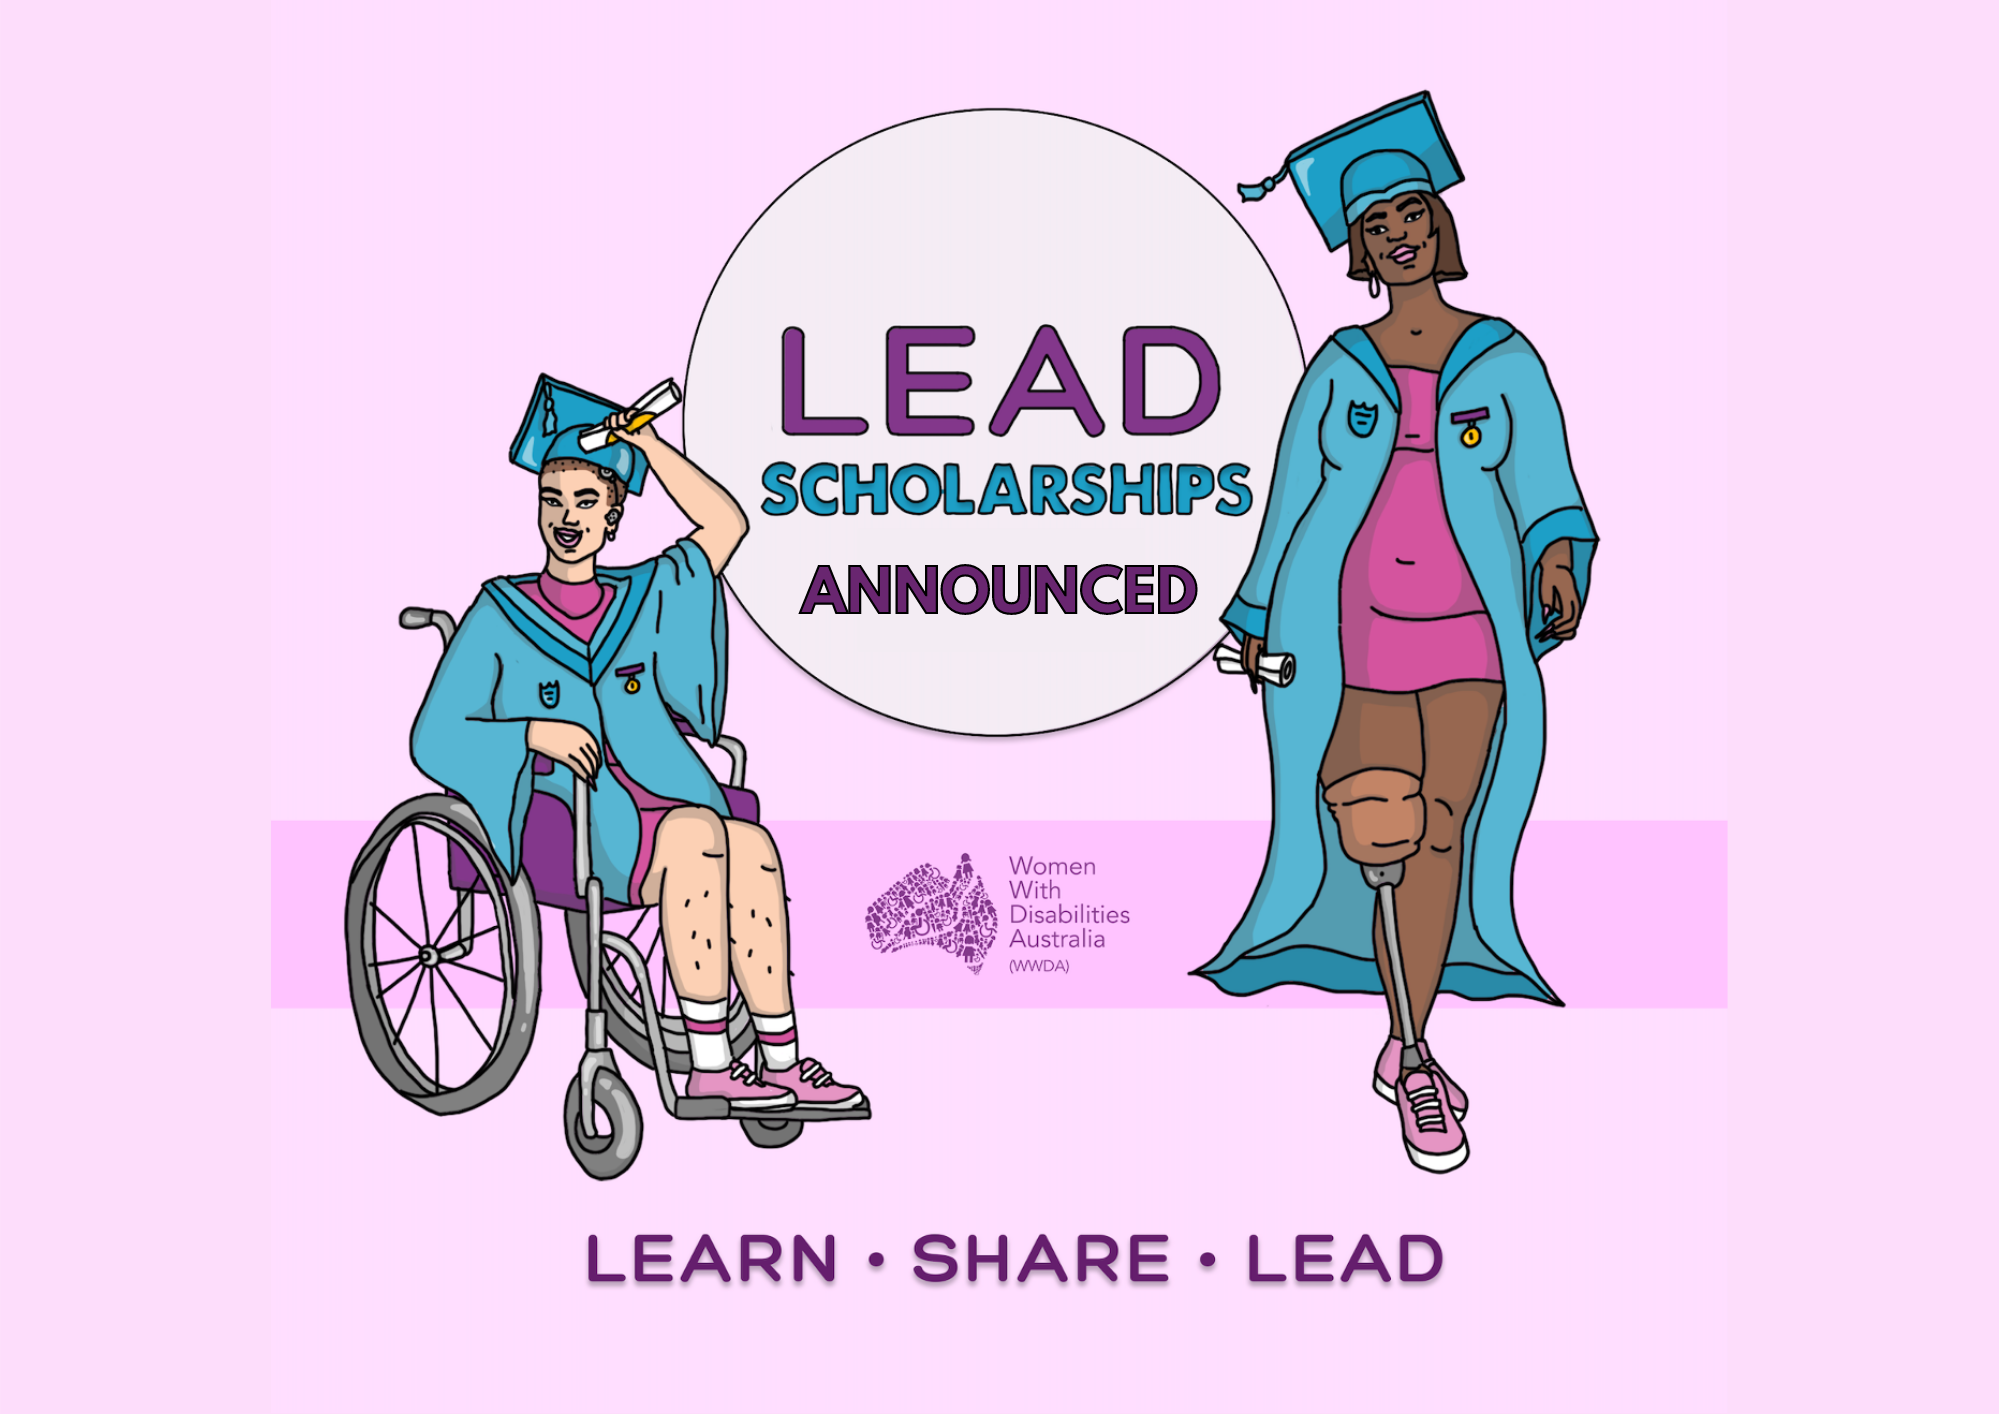 Bright pink background, LEAD Scholarships announced, an illustration of two women representing disability and diversity, wearing a graduation cap and gown.